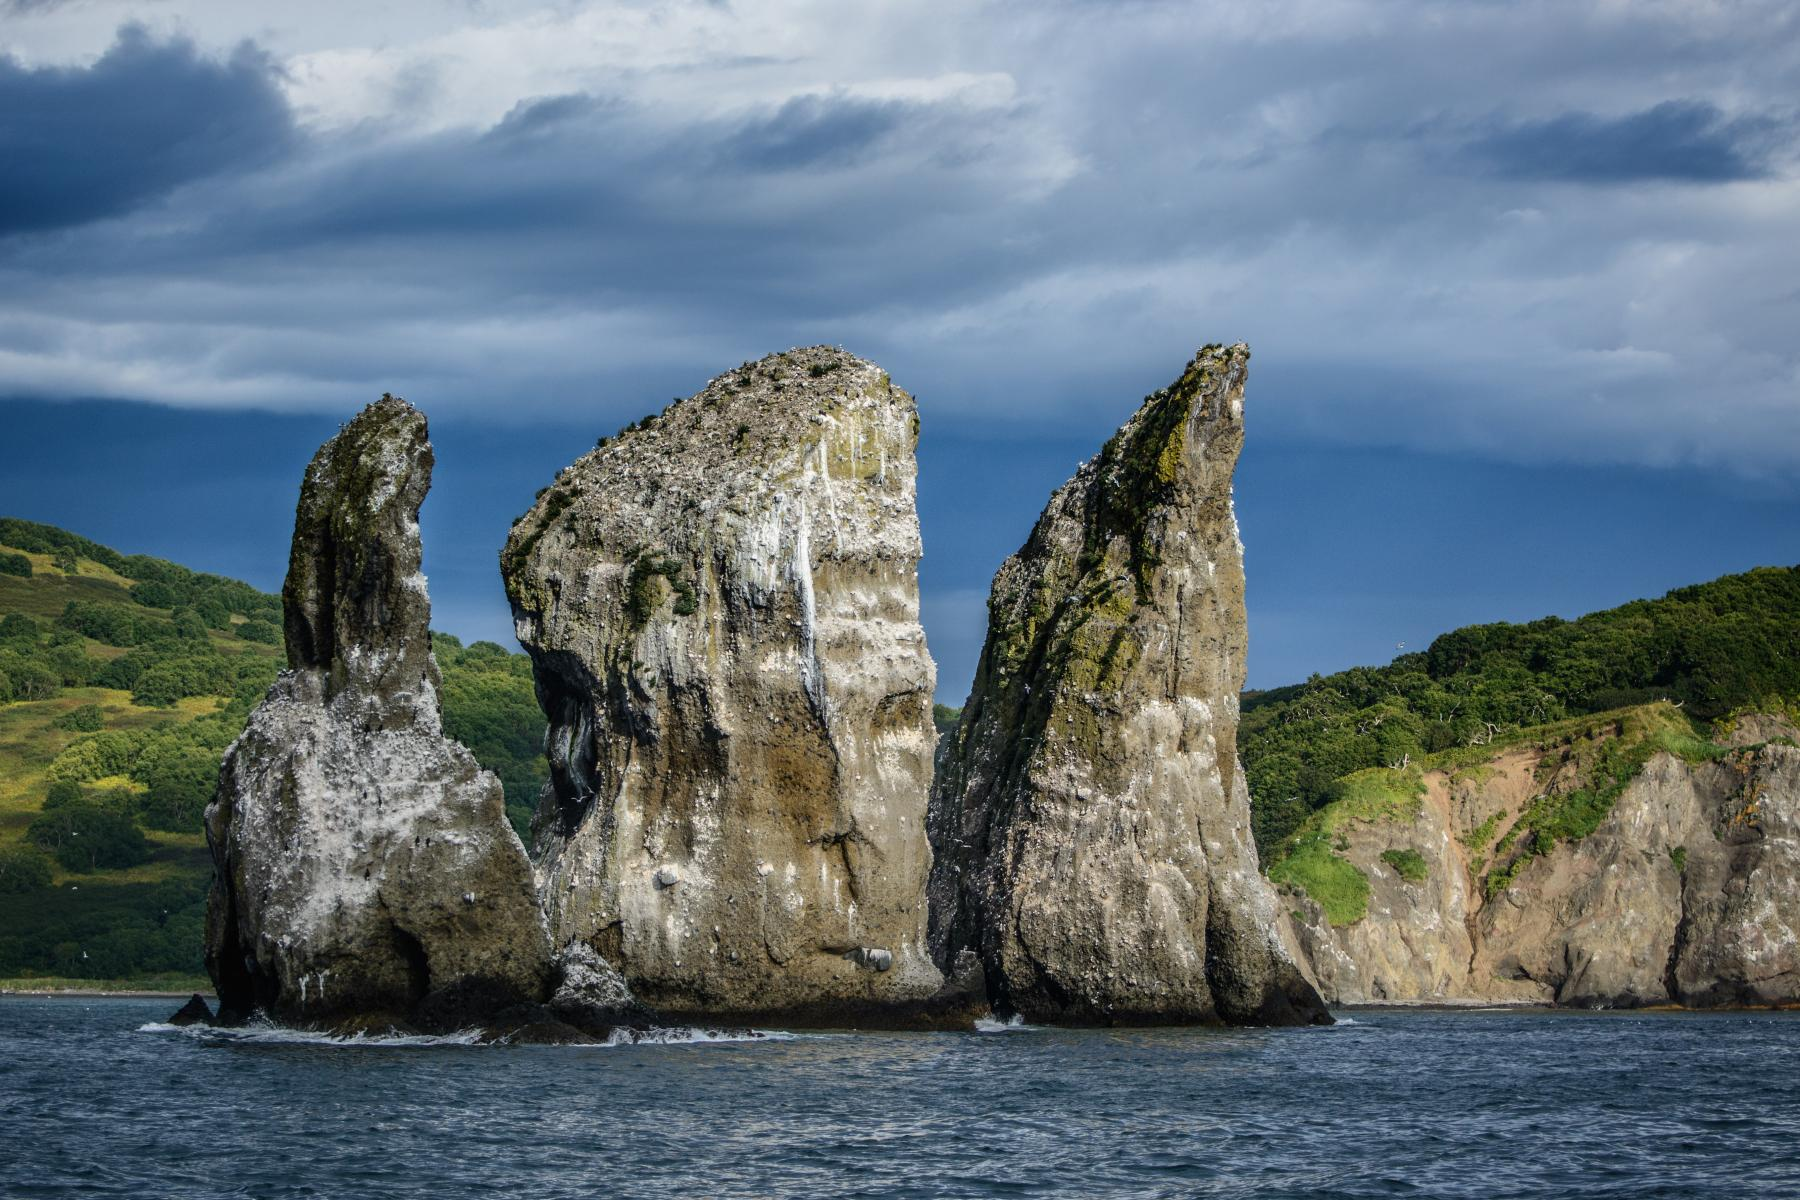 Journey to the ends of the world (Russia), the Far East of Iceland starting at Kamchatka Krai, Russia